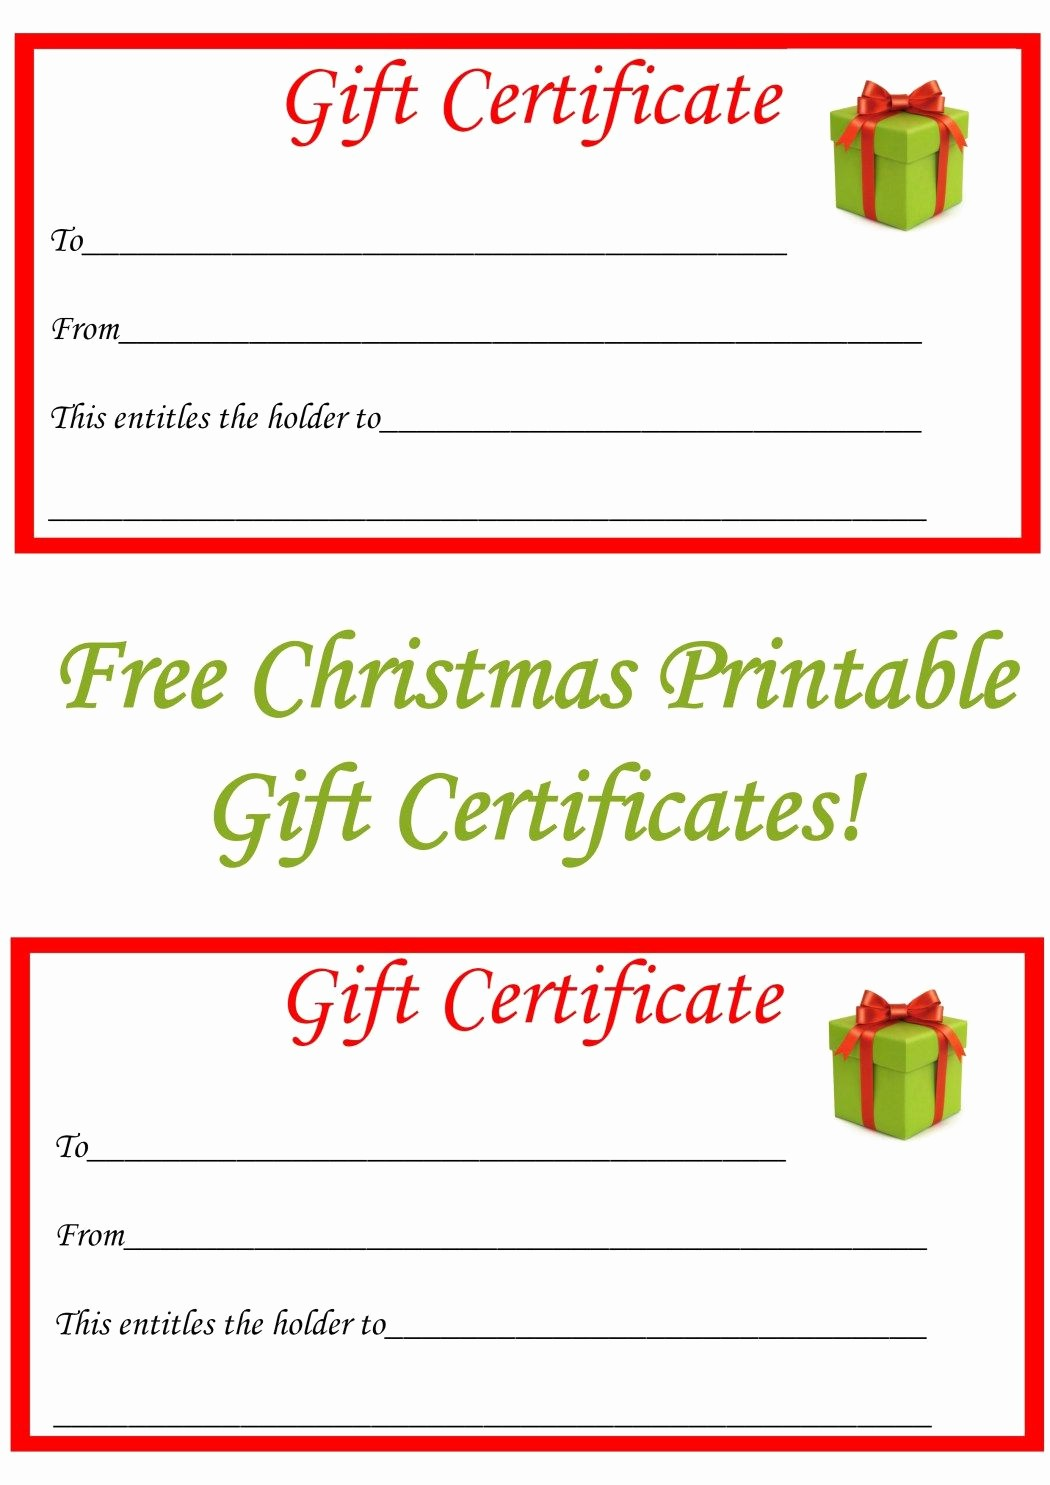 Gift Certificate Templates Free Printable Beautiful the 25 Best Printable T Certificates Ideas On